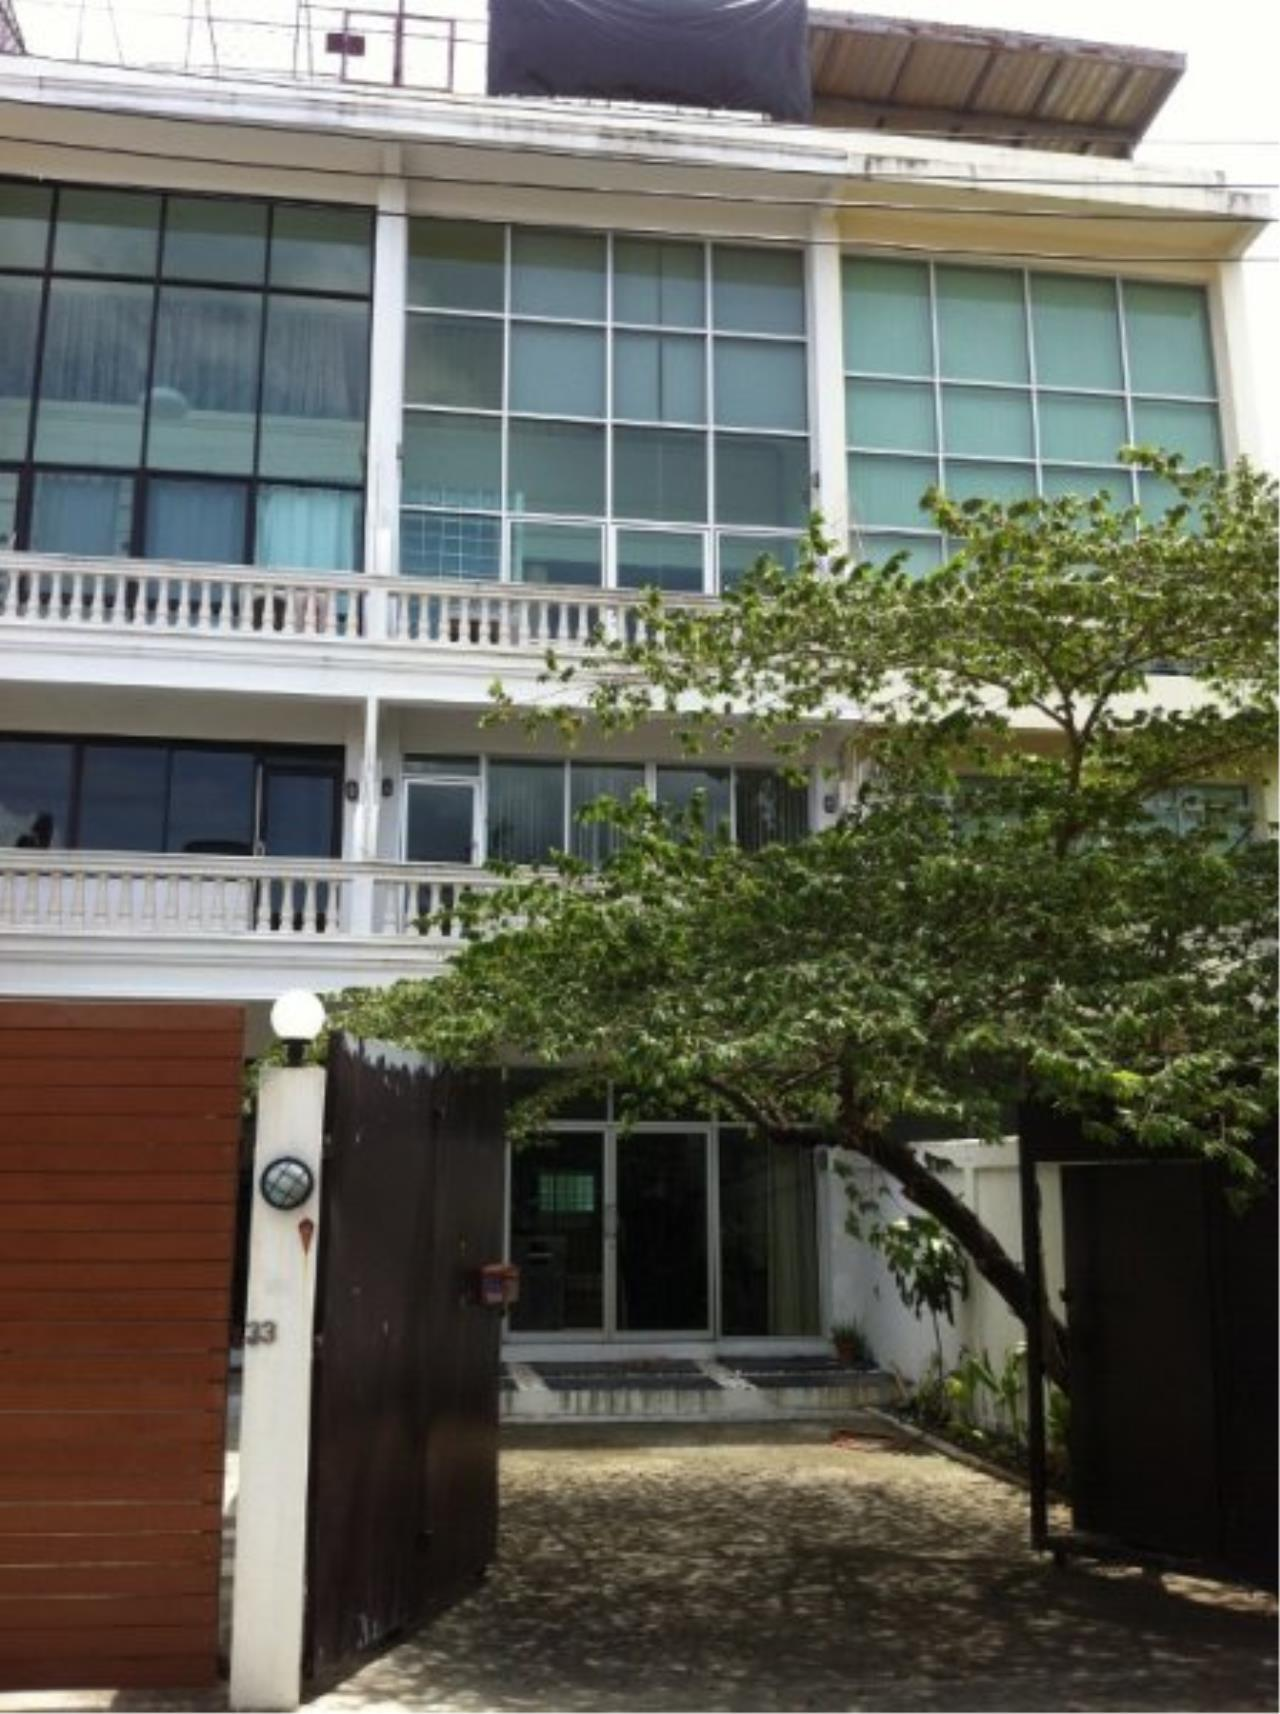 Piri Property Agency's Spacious 5 Bedrooms Townhouse in Sukumvit for rent 1